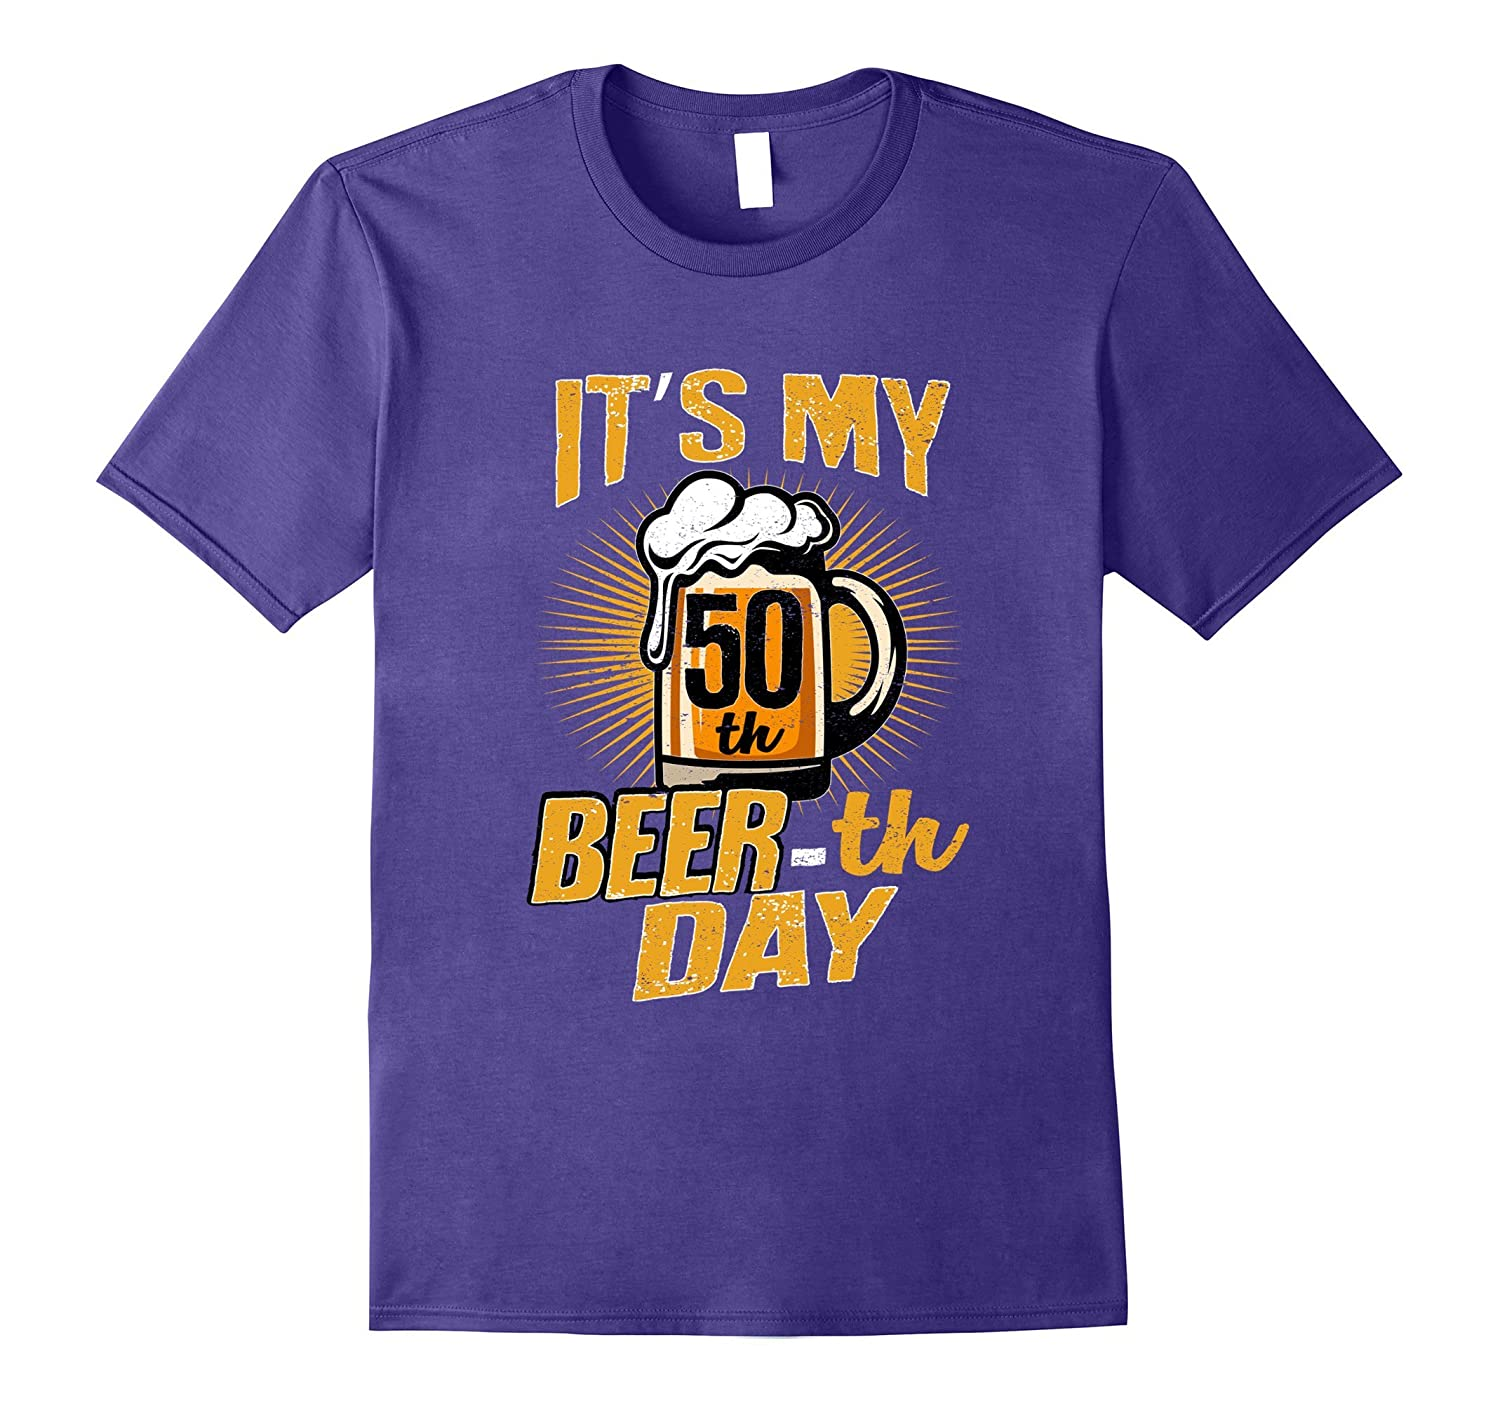 50th Beer-th Day Funny Birthday Beer Pun T-Shirt Vintage-Art